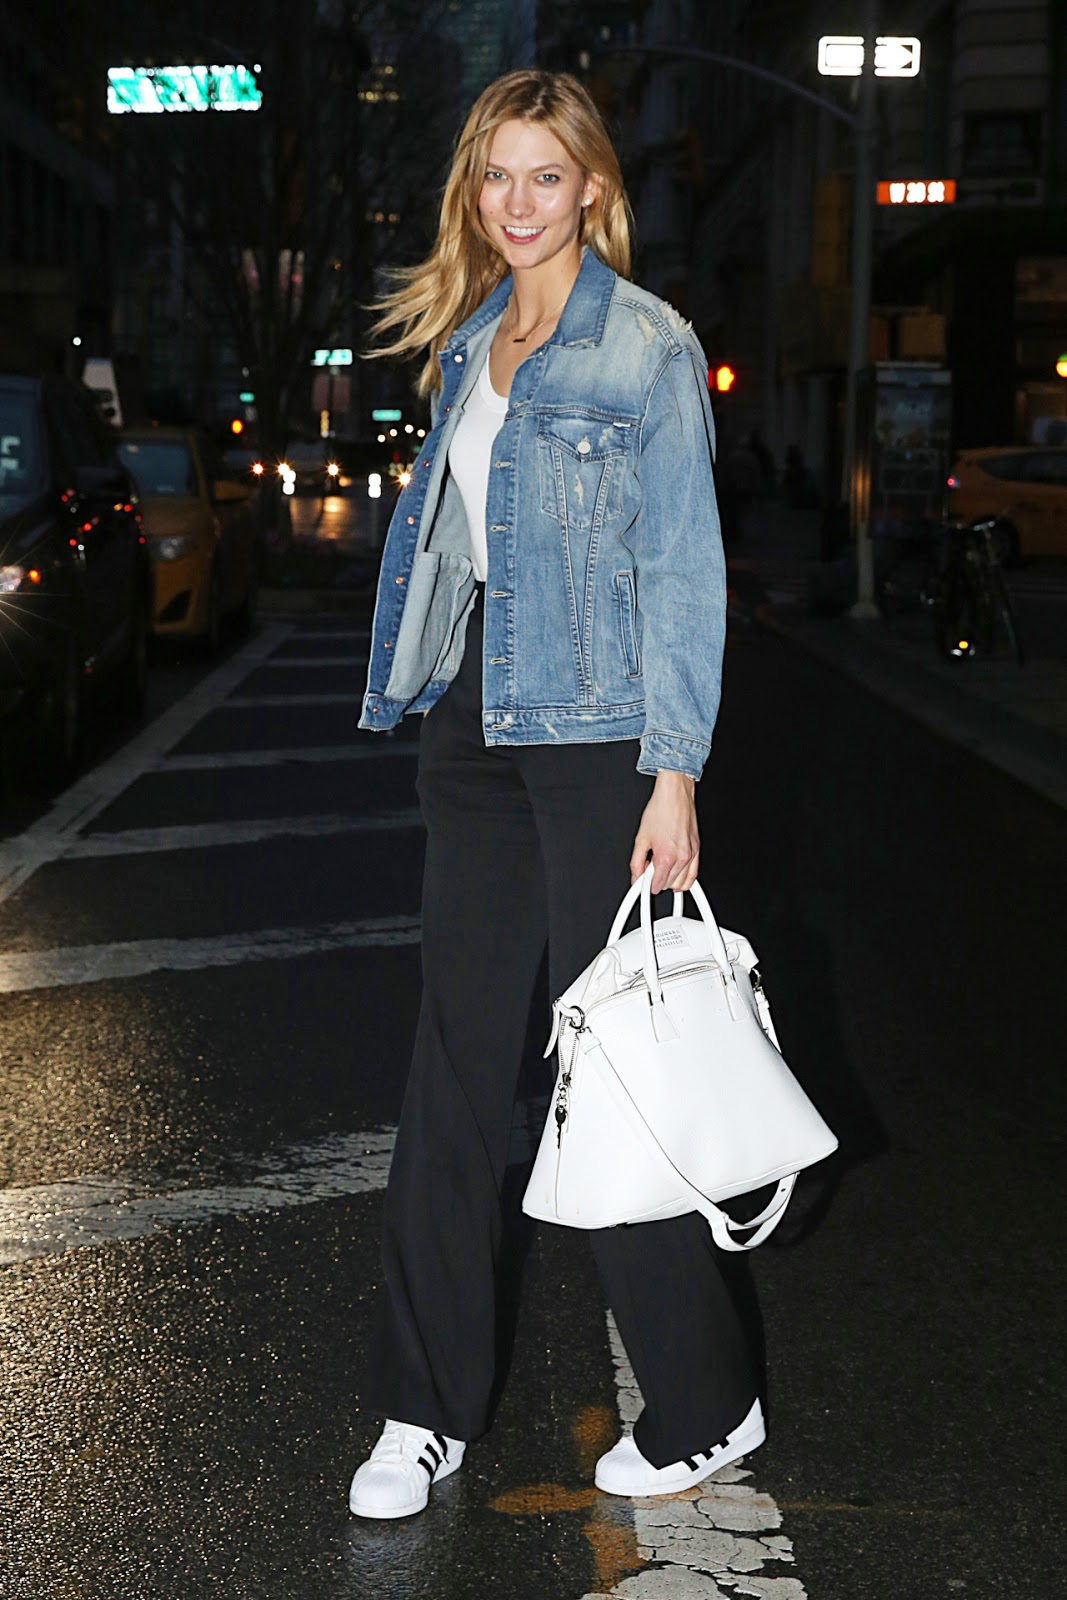 Karlie Kloss Wears a Denim Jacket in NYC